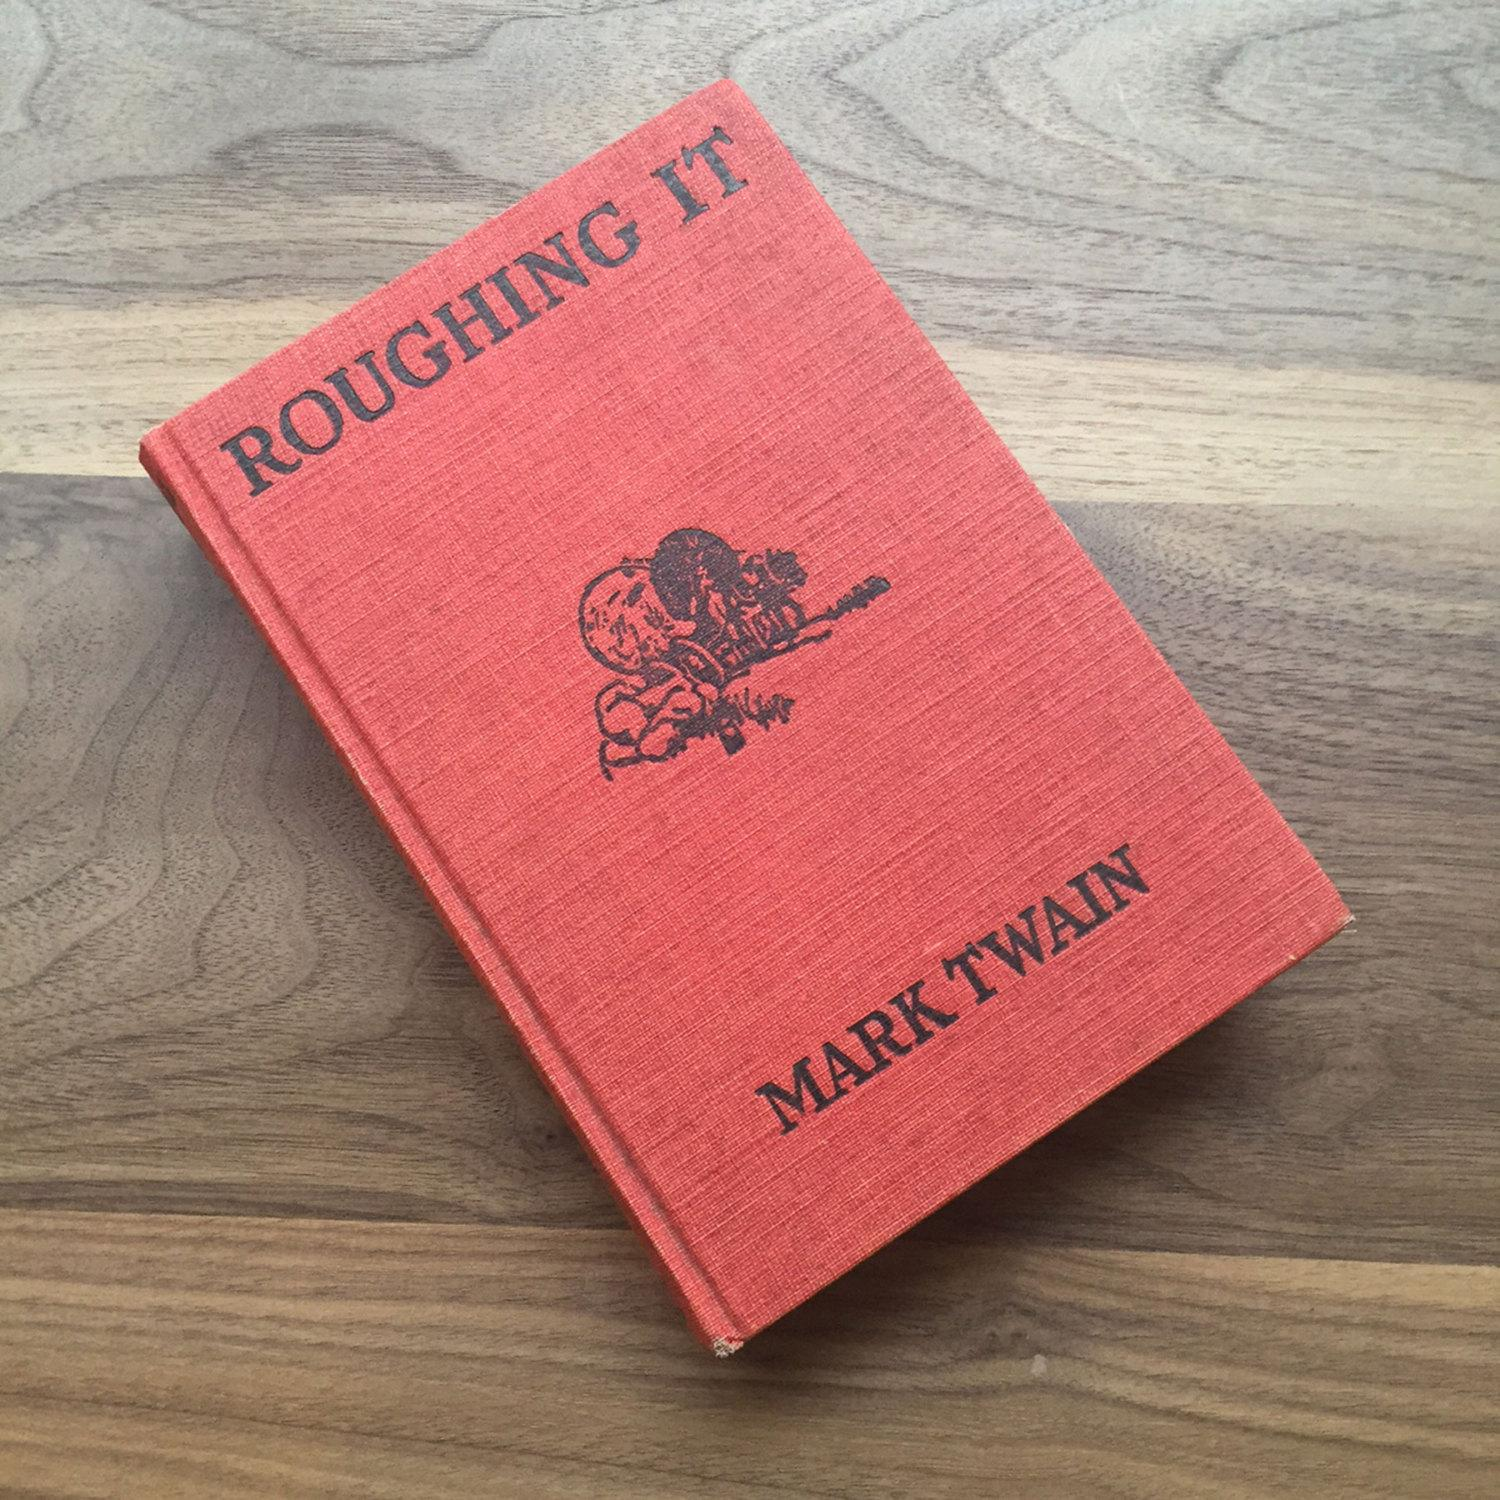 roughing it by mark twain A semi-autobiographical travel account written by american humorist mark twain it was authored during 1870¿71 and published in 1872 as a prequel to his first book innocents abroad.